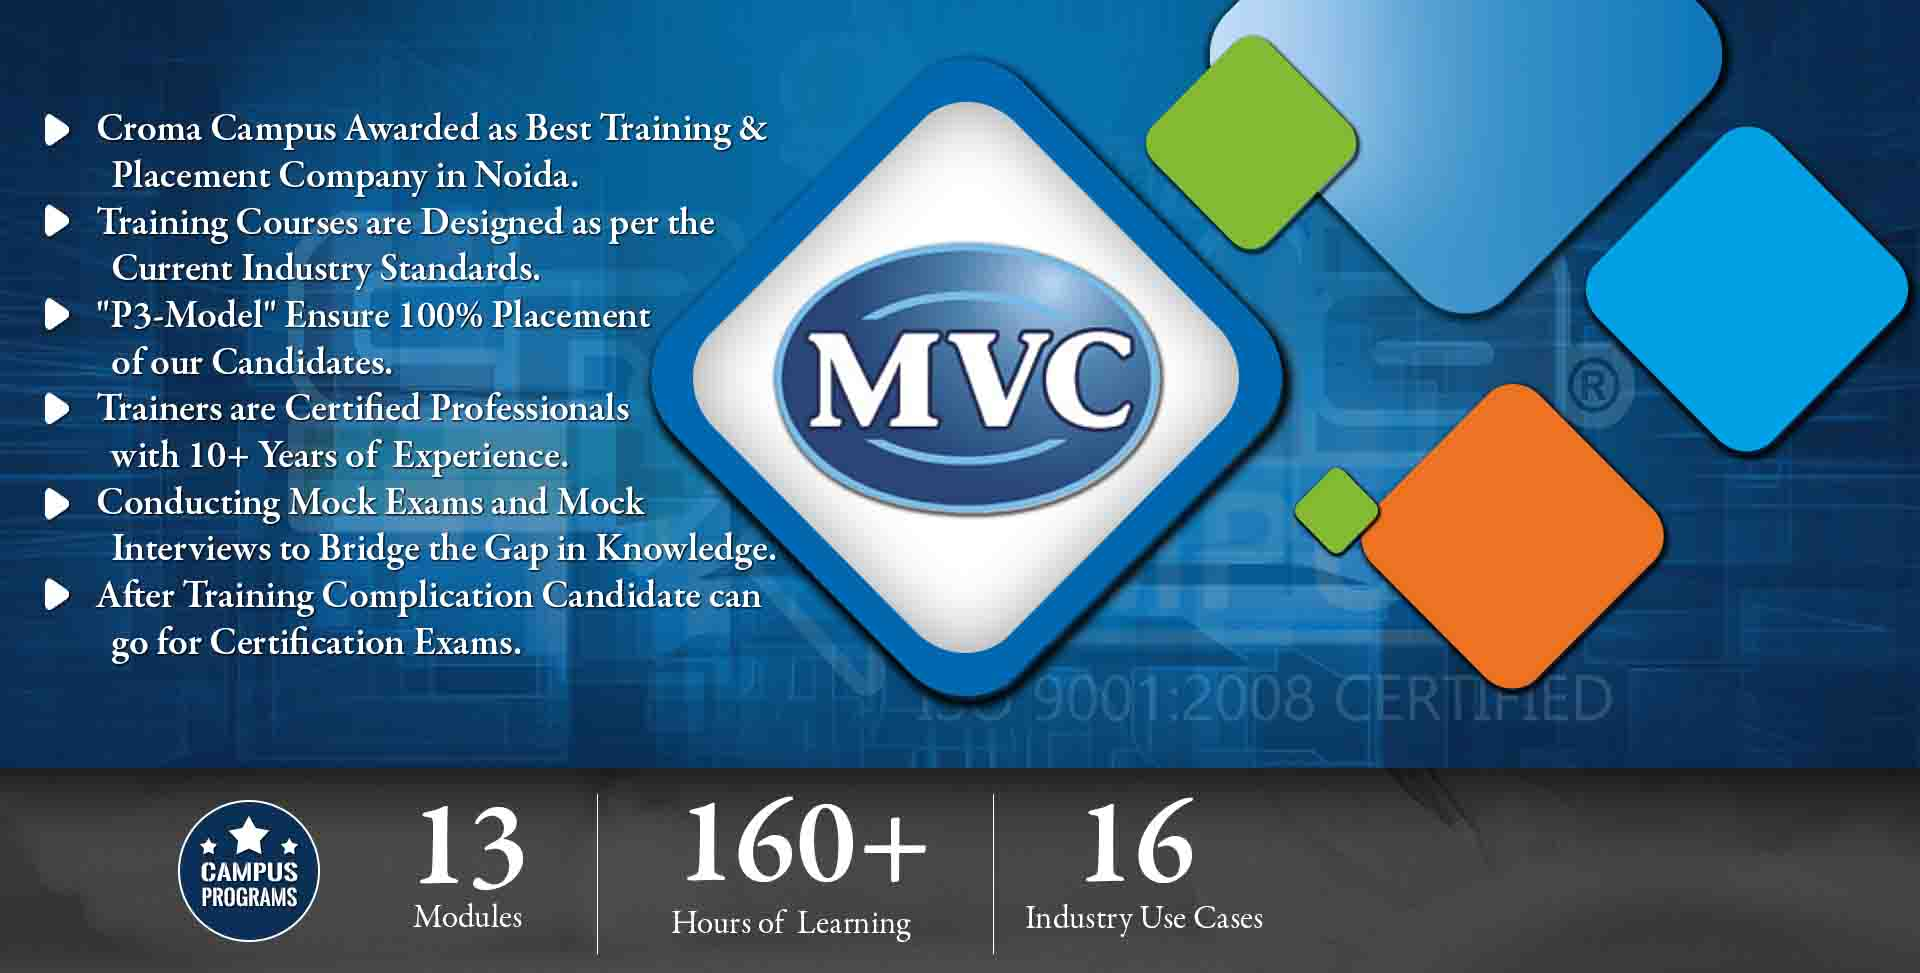 MVC Training in Noida- Croma Campus